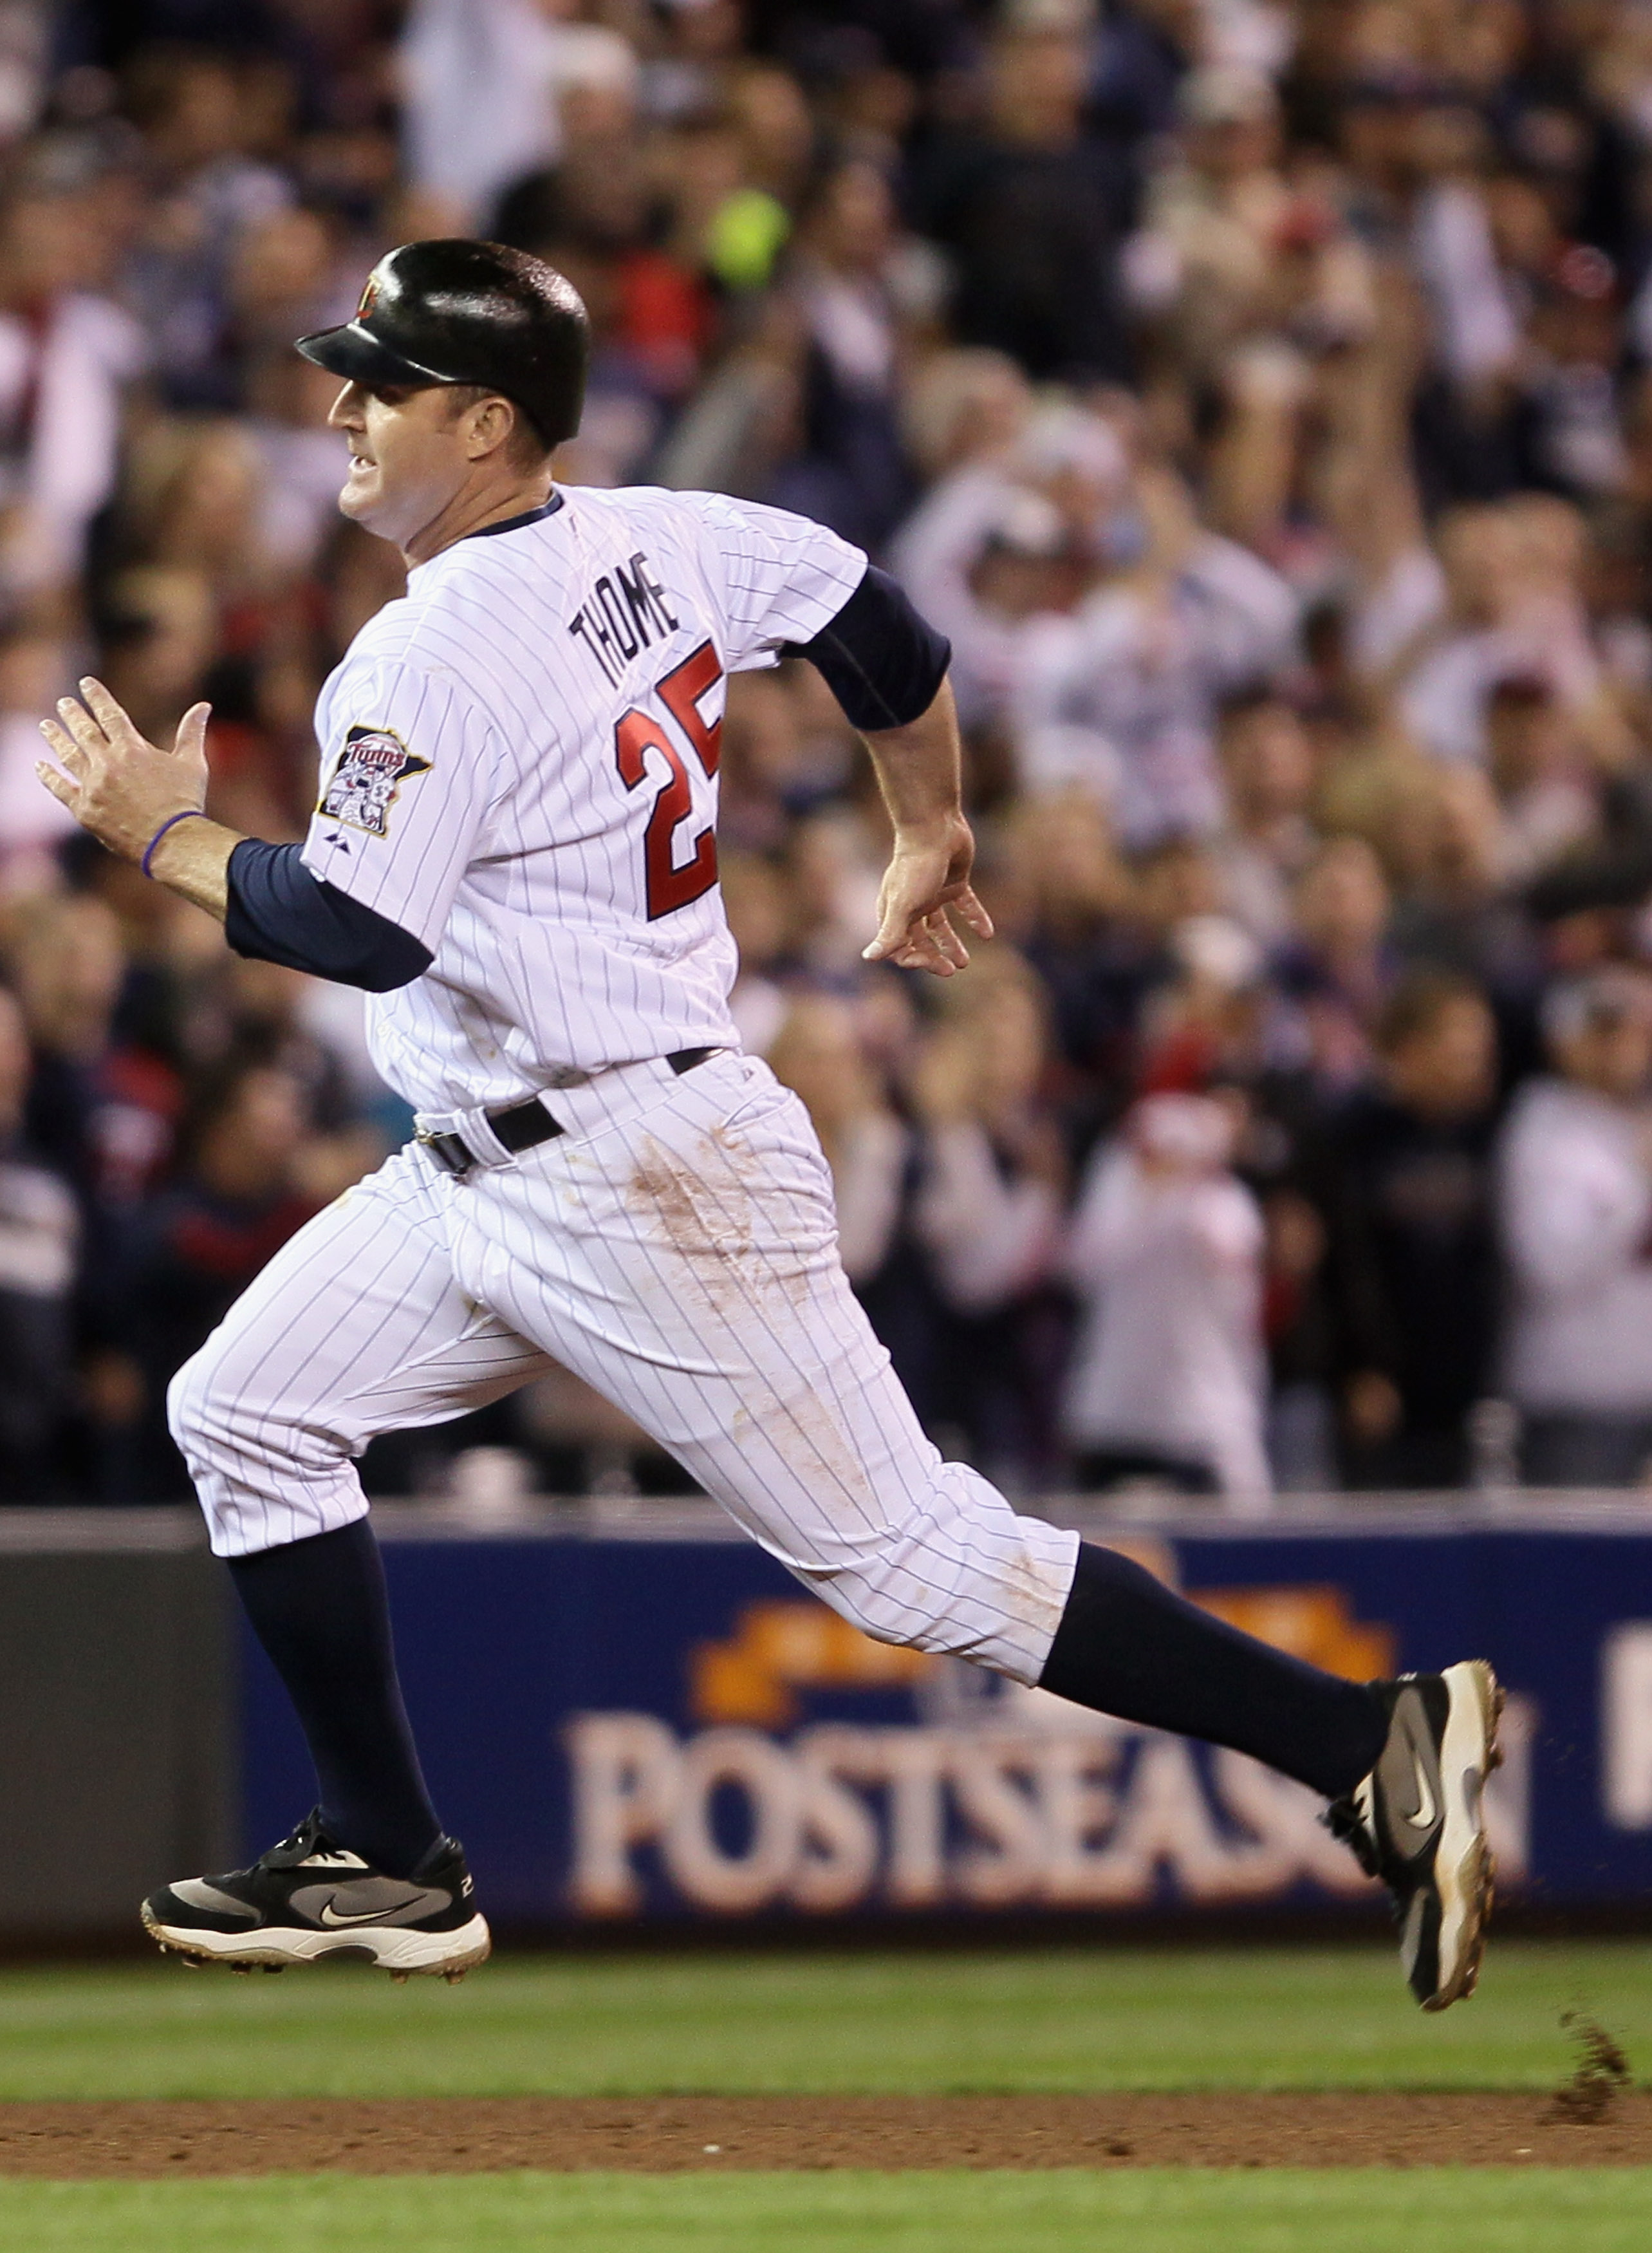 MINNEAPOLIS - OCTOBER 06: Jim Thome #25 of the Minnesota Twins rounds third base against the New York Yankees during game one of the ALDS on October 6, 2010 at Target Field in Minneapolis, Minnesota.  (Photo by Elsa/Getty Images)